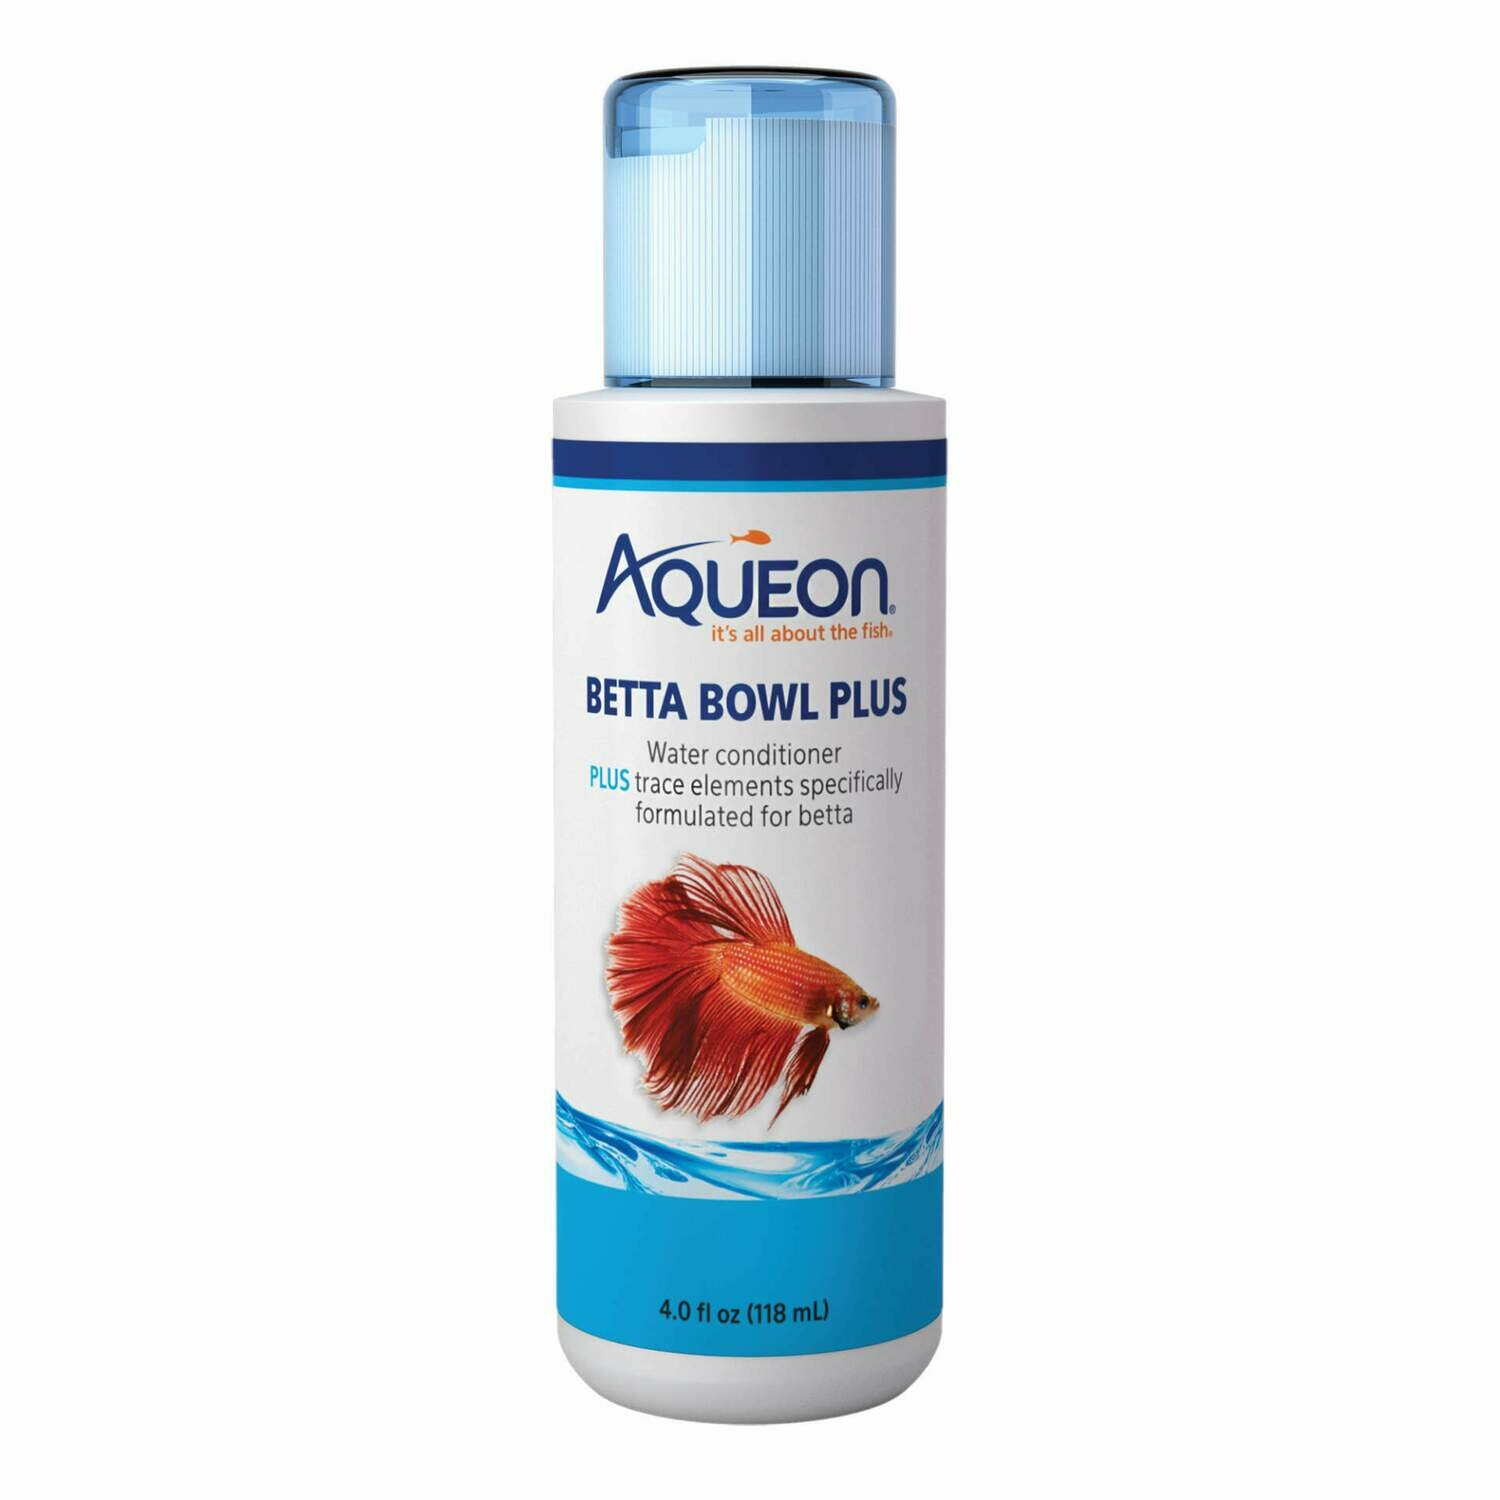 Aqueon Betta Bowl Plus Water Conditioner 4oz